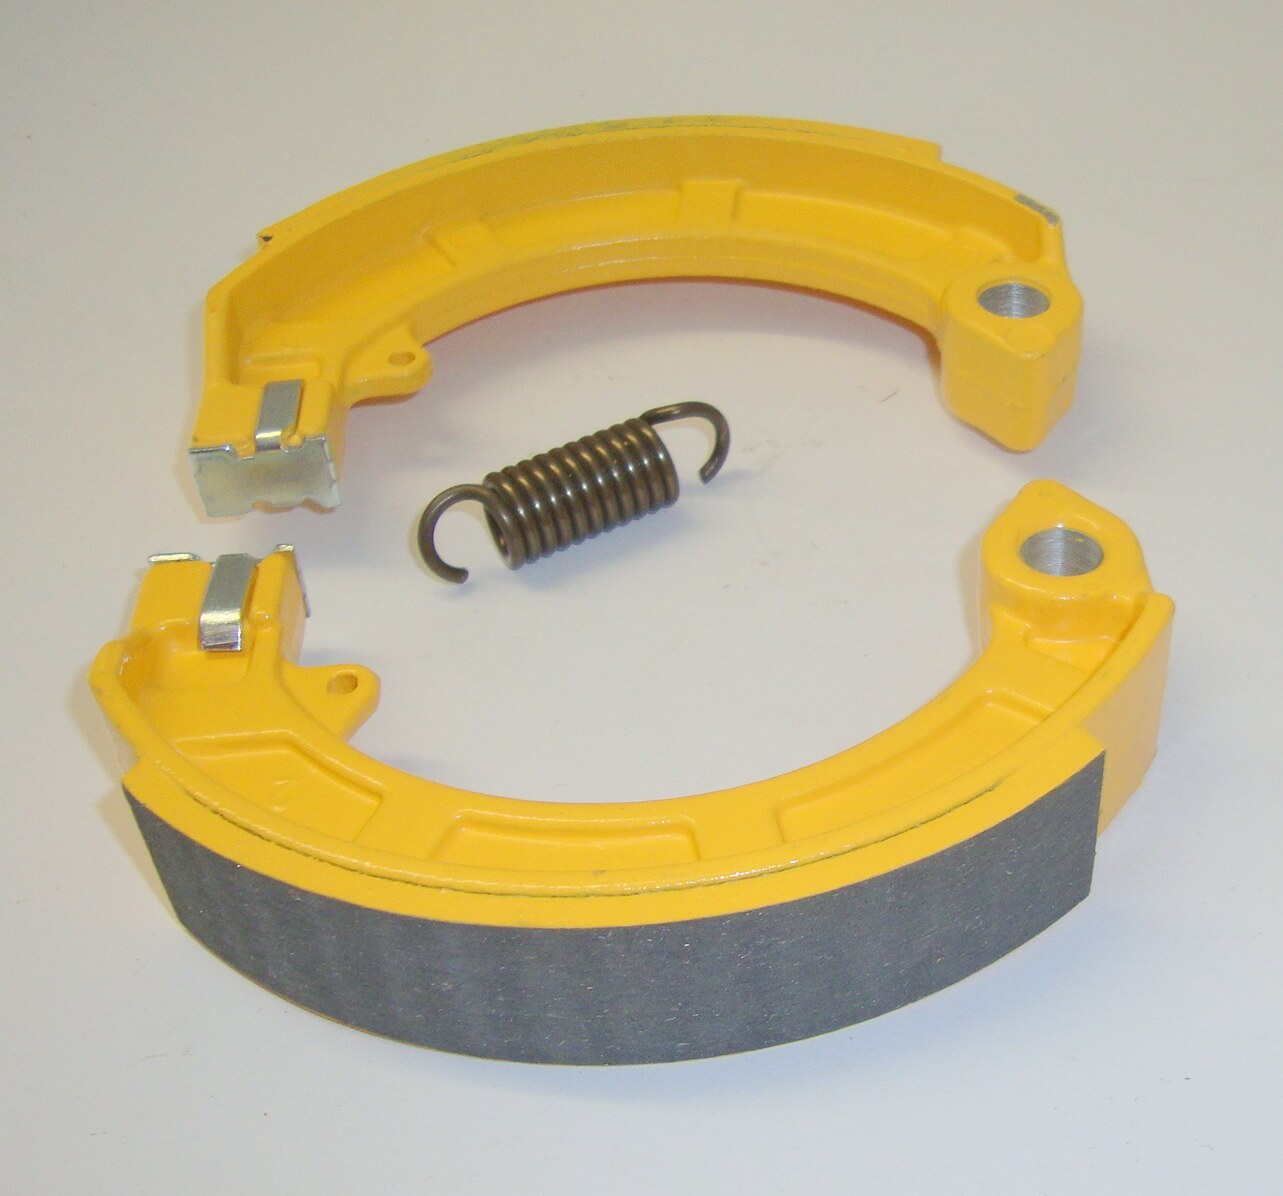 Brake shoes, MALOSSI, Vespa / Ape, like AZ 133